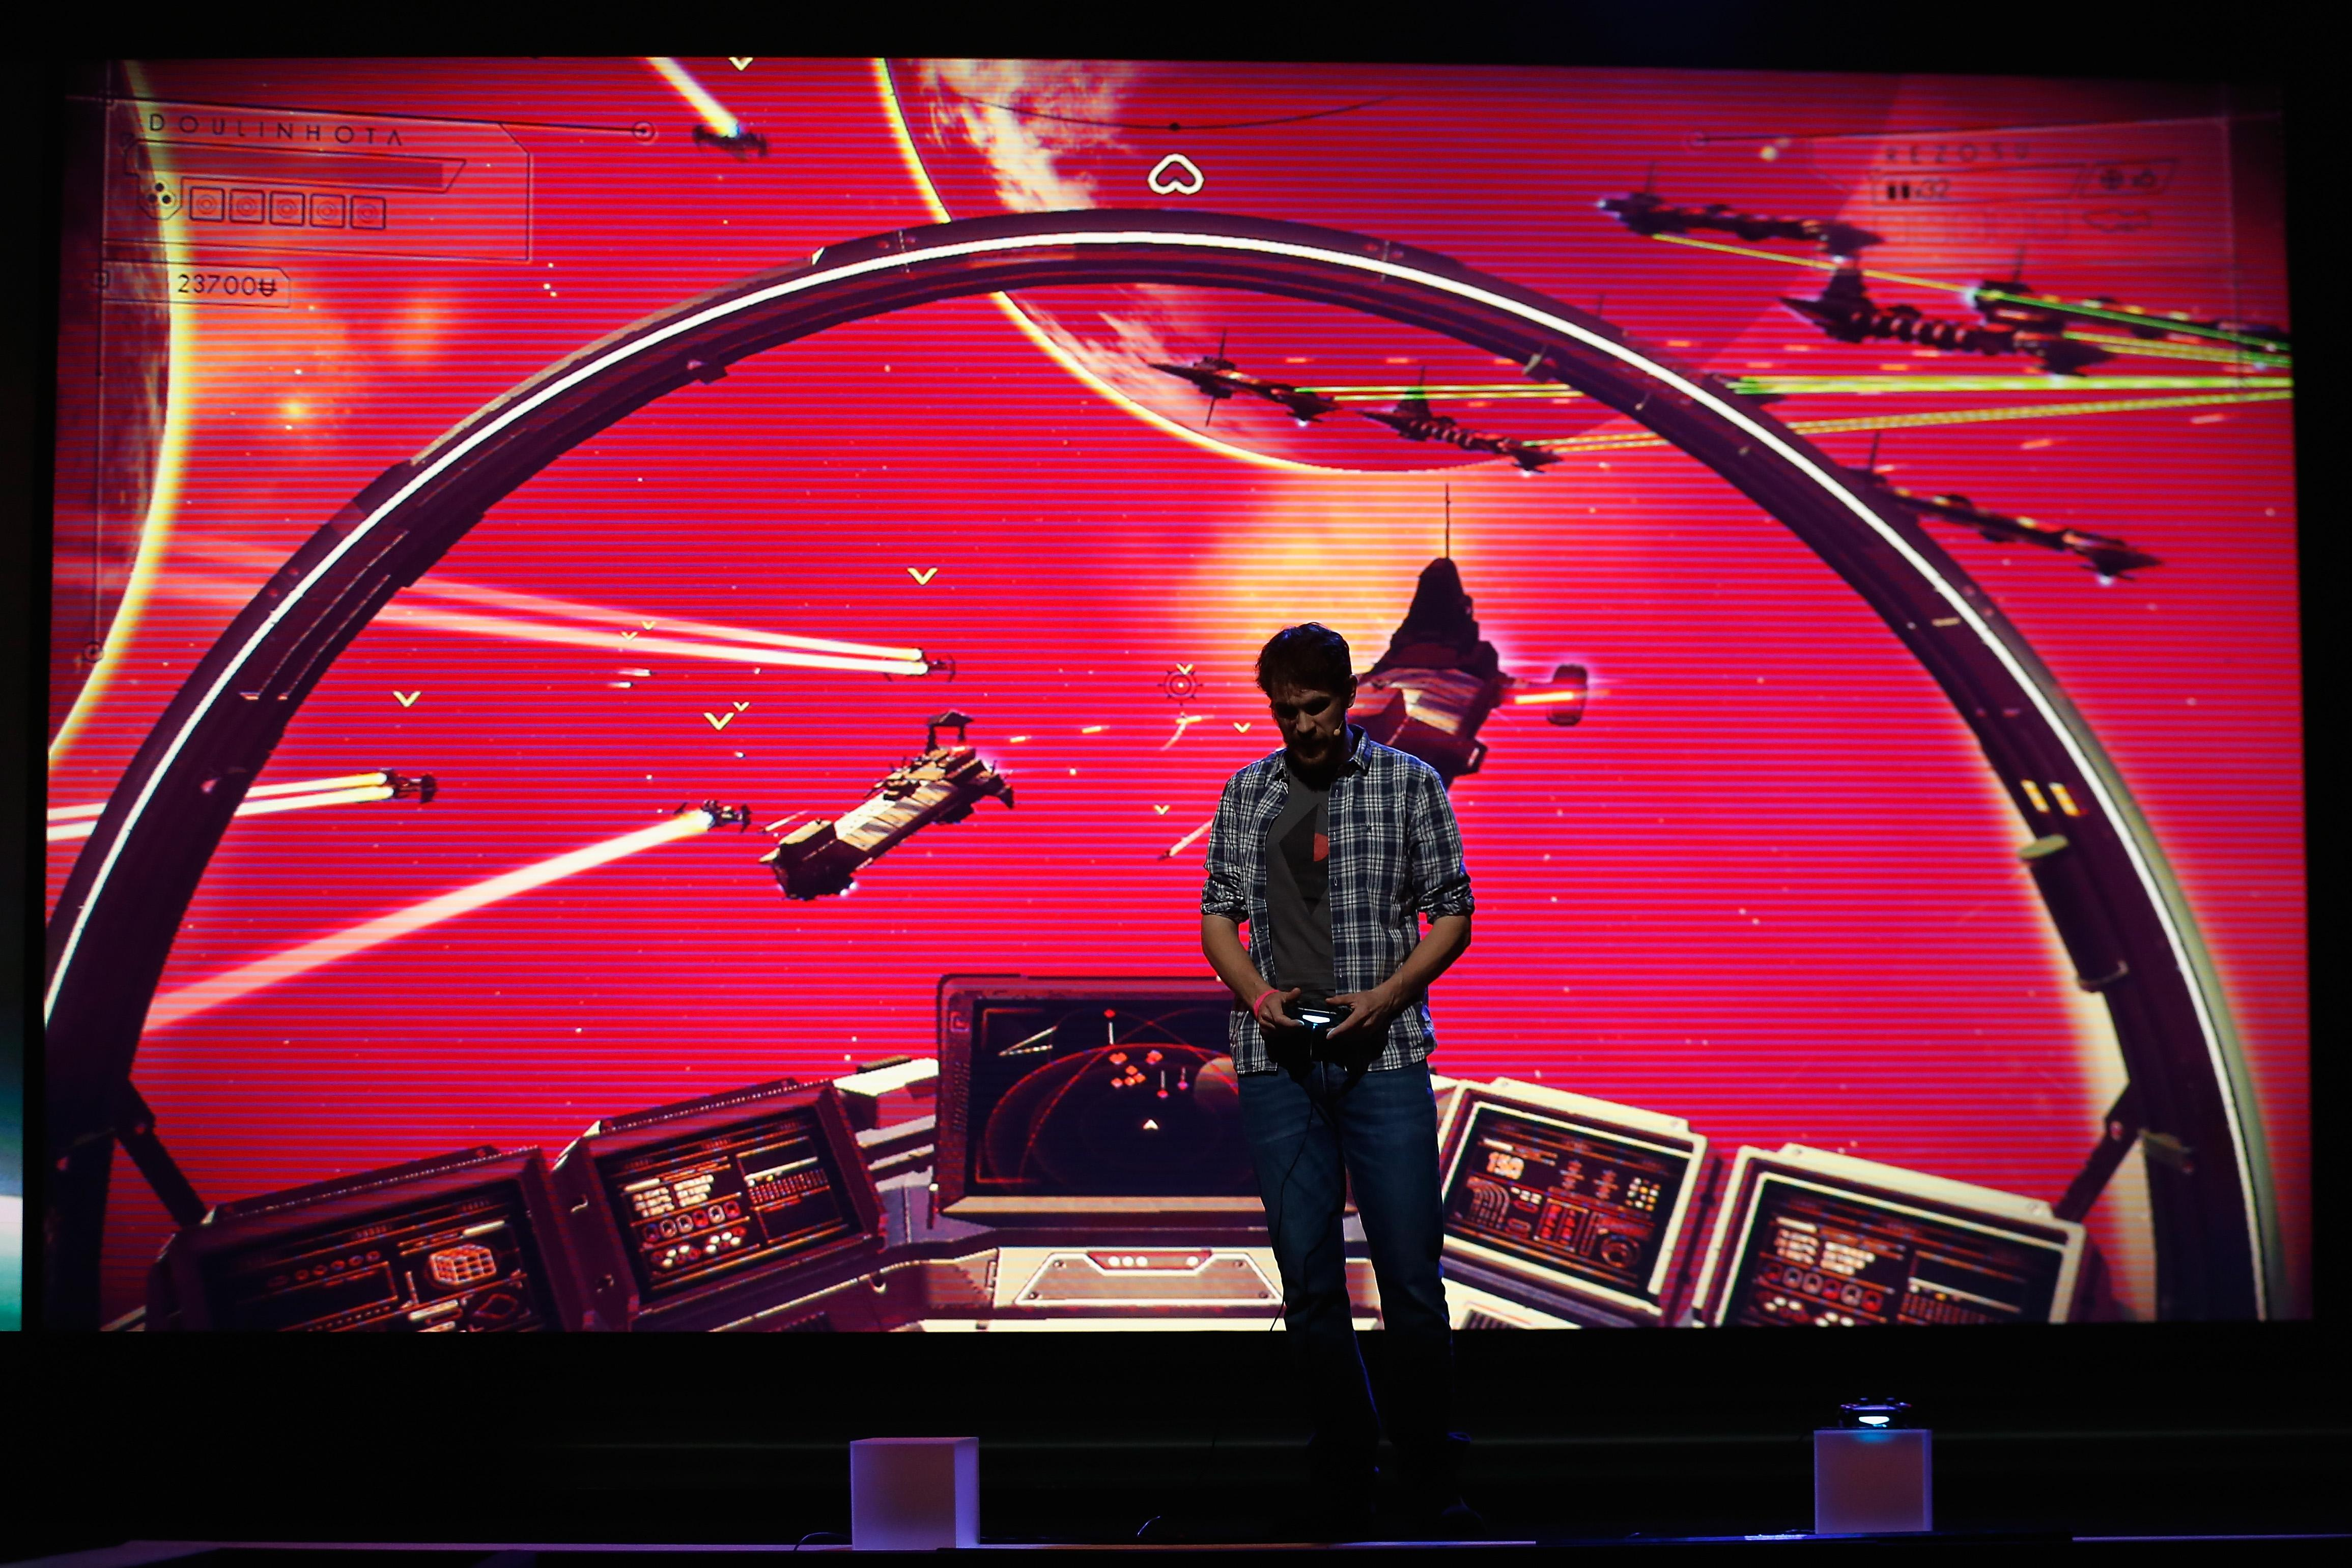 'No Man's Sky': Widely Criticized Game Recovers, Successfully Improves